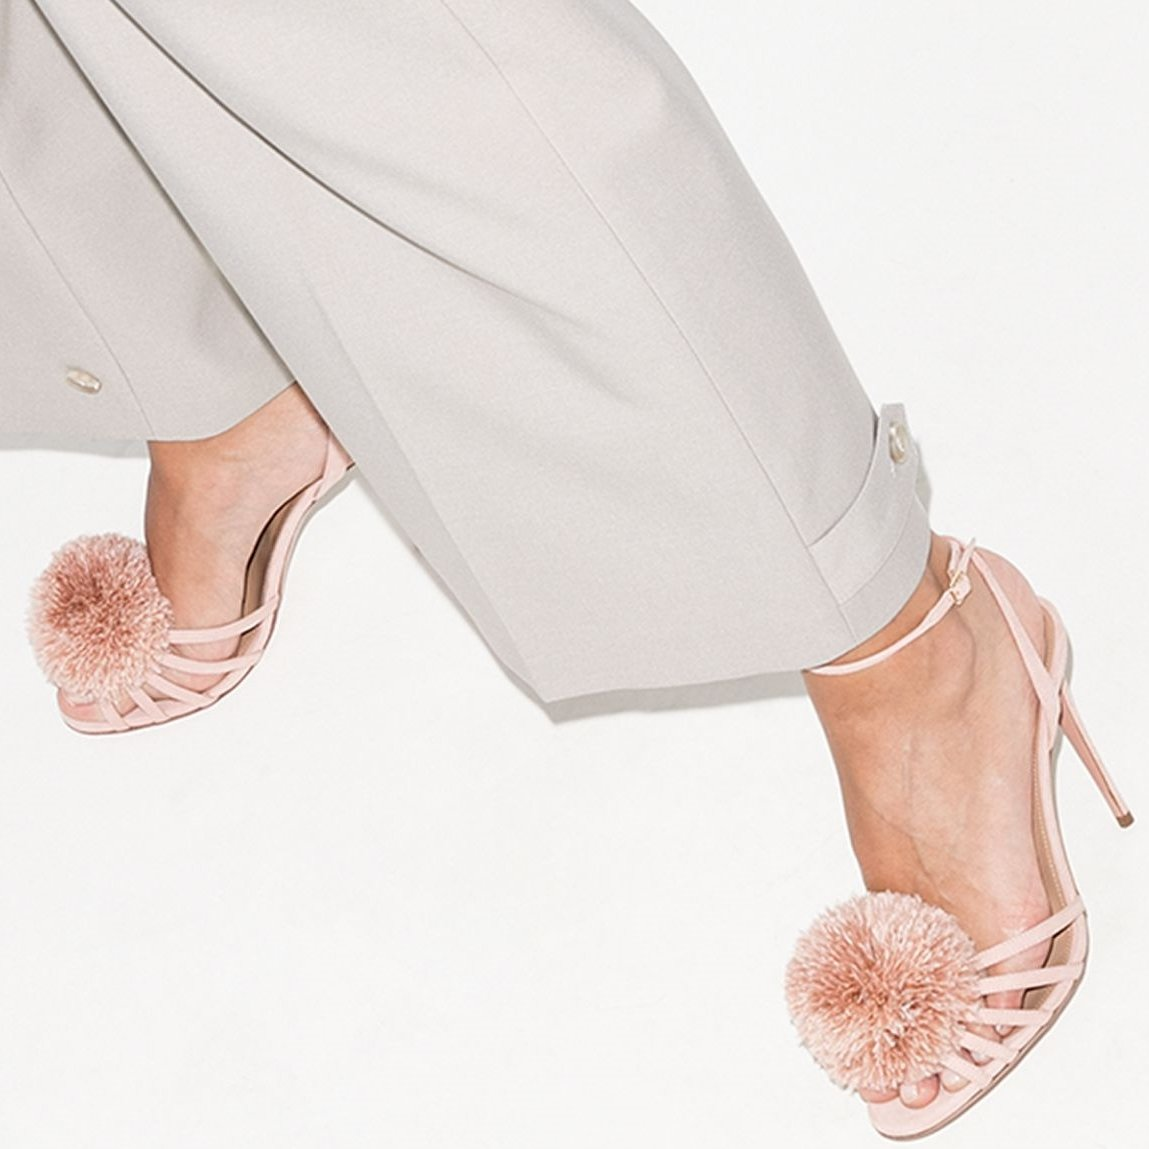 These pink Aquazzura X Browns 50 120 pom-pom leather sandals have been made in Italy